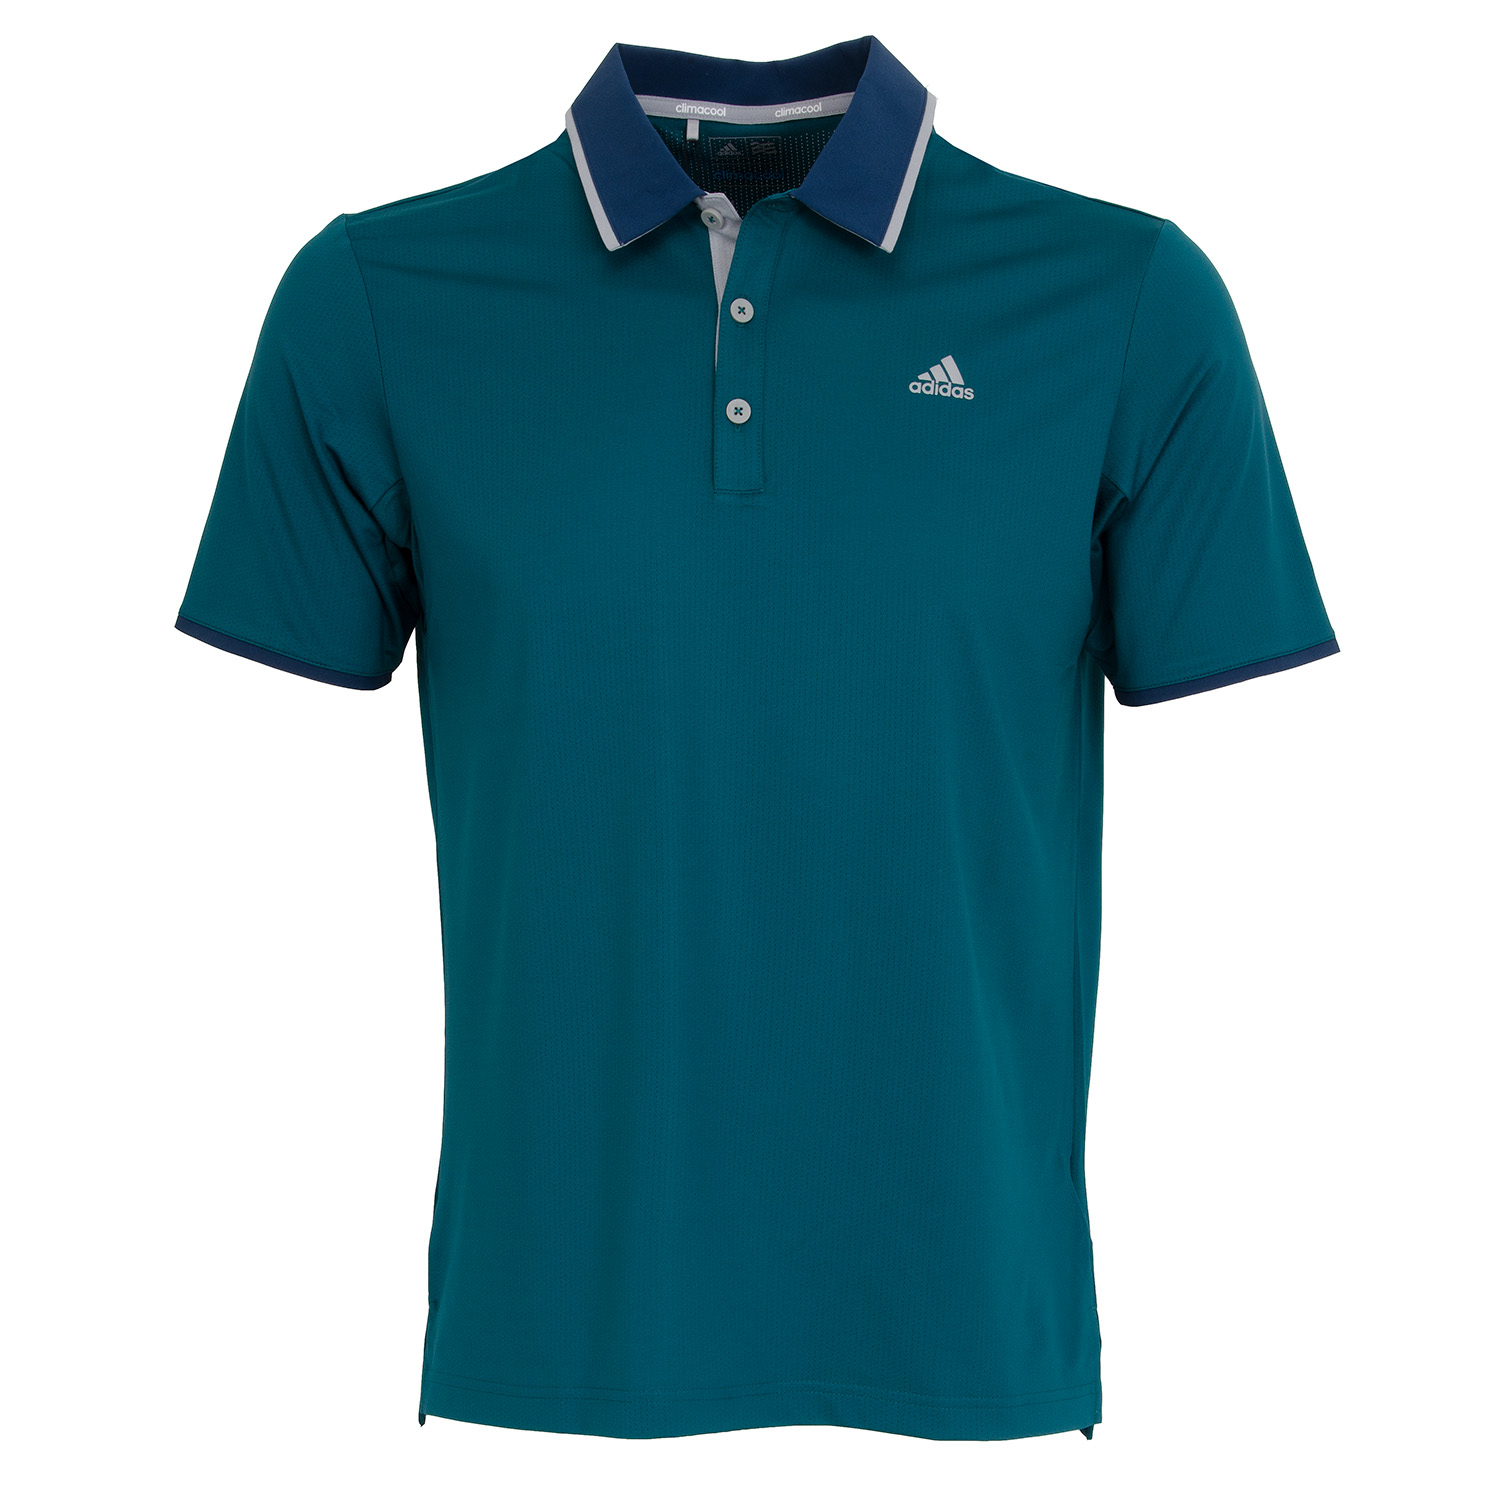 new product 7904d fd75d adidas ClimaCool Performance Polo Shirt